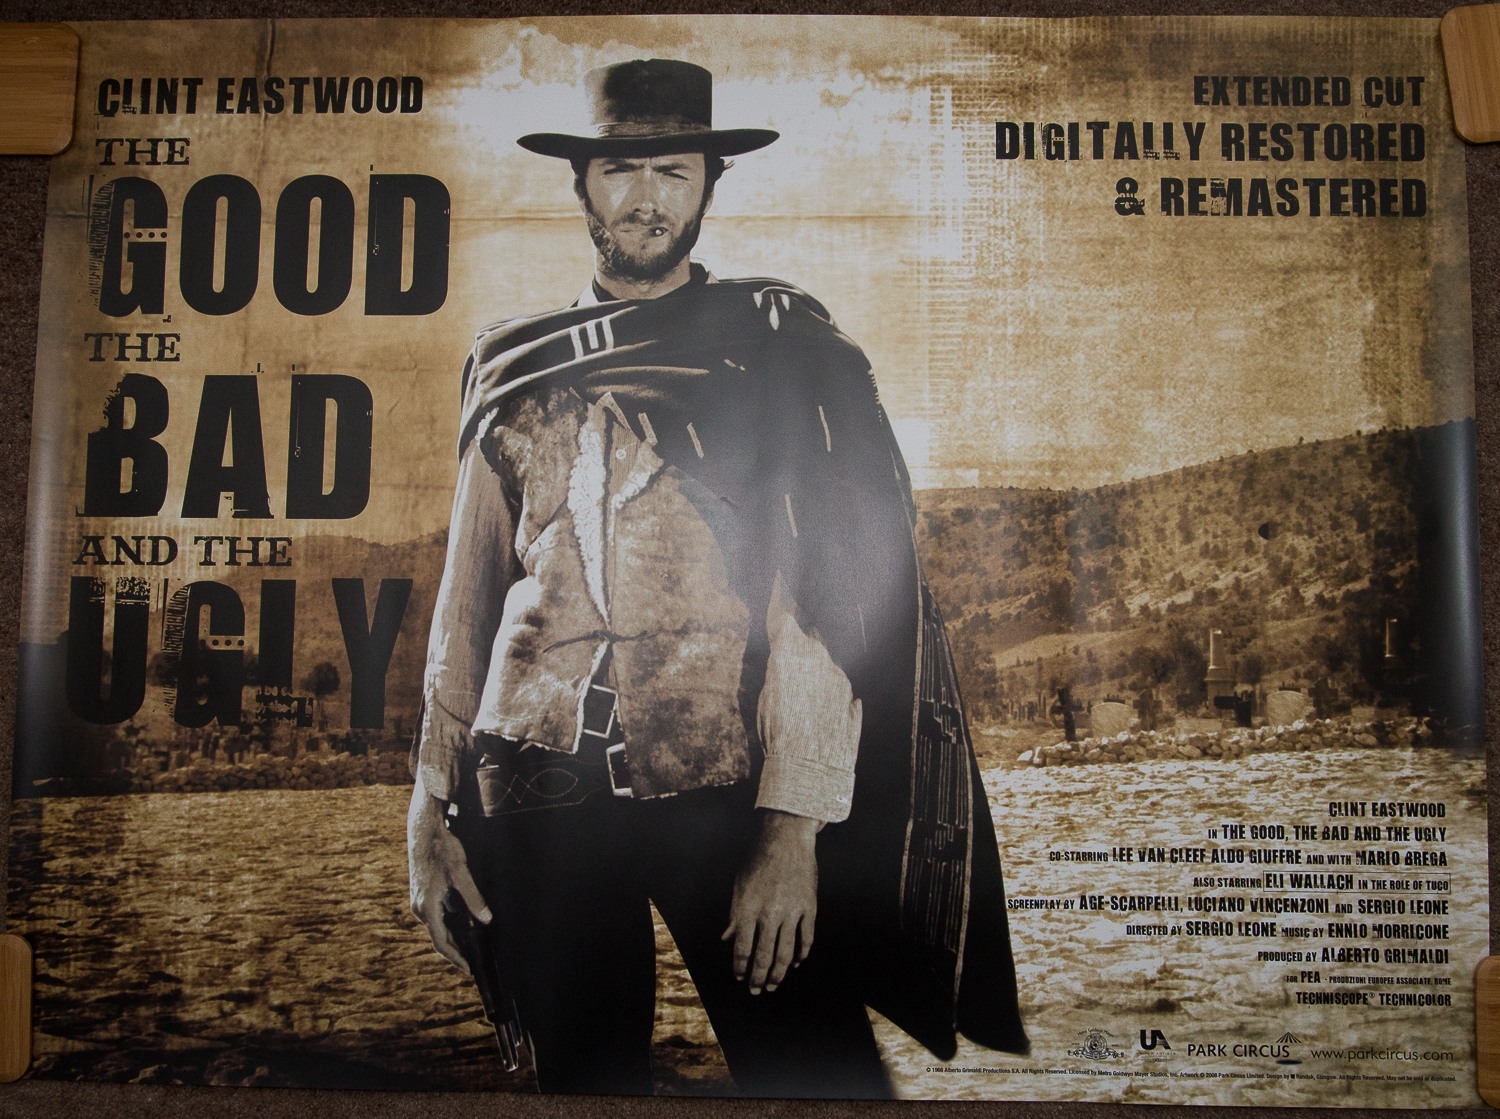 THE GOOD, THE BAD & THE UGLY (2008 Release) - UK Quad Film Poster - Park Circus Release - Unique